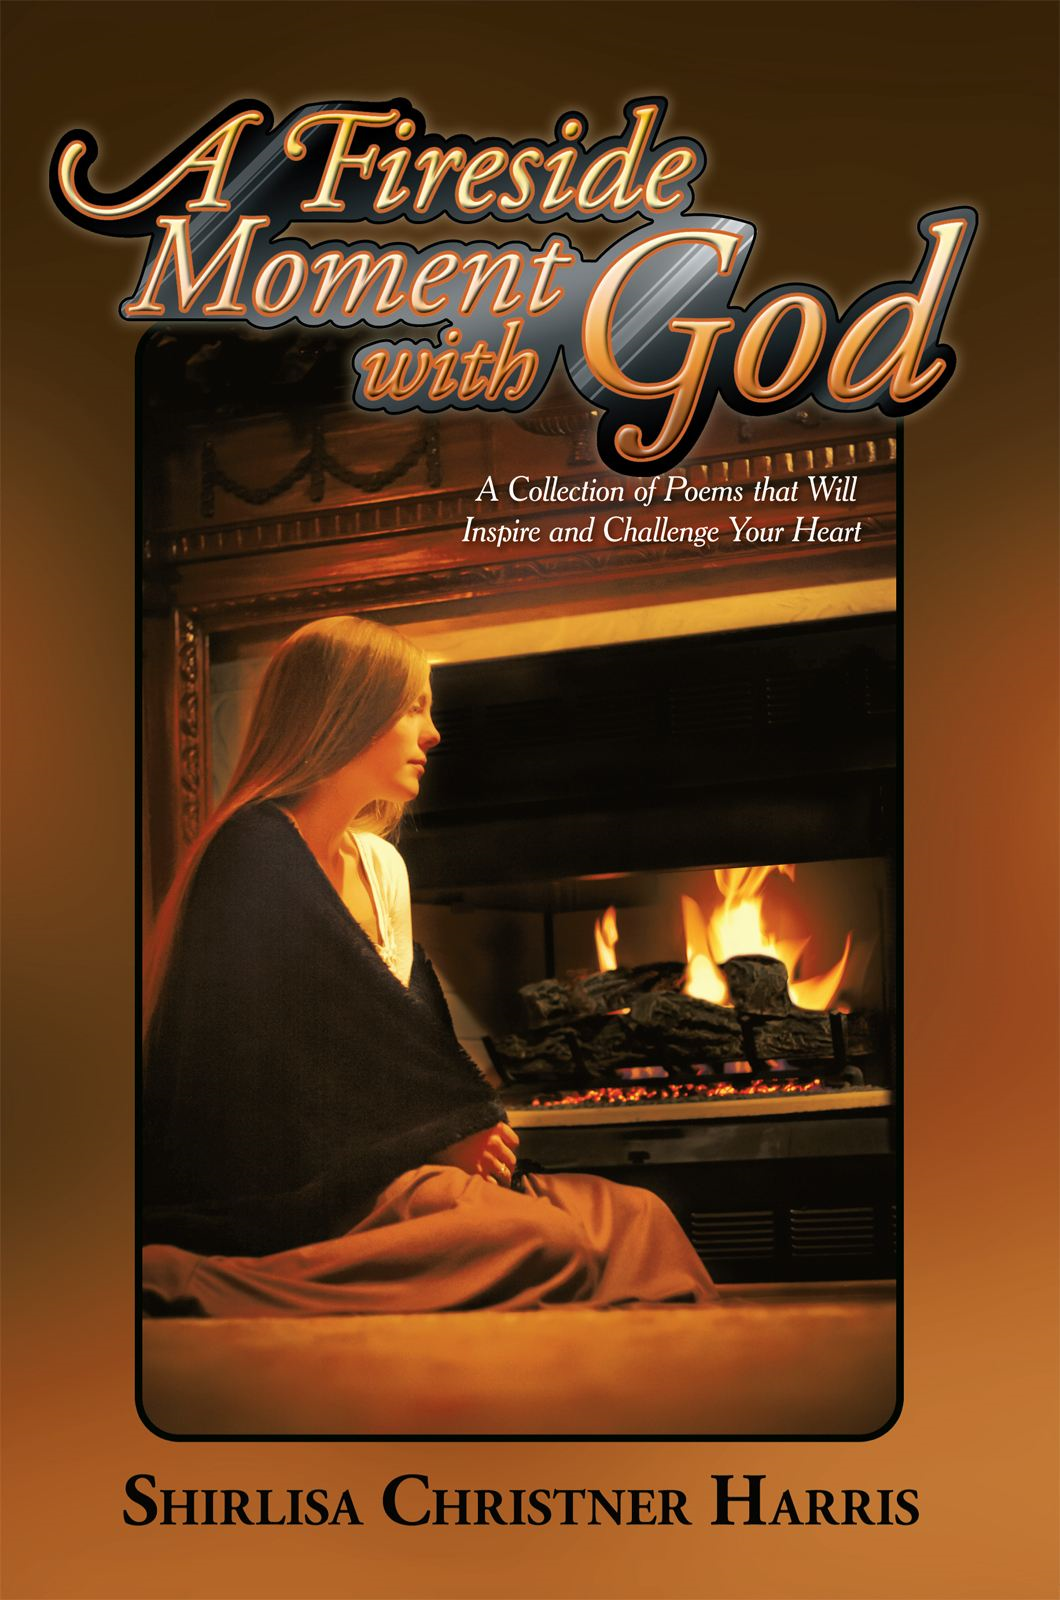 A Fireside Moment with GOD By: Shirlisa Christner Harris